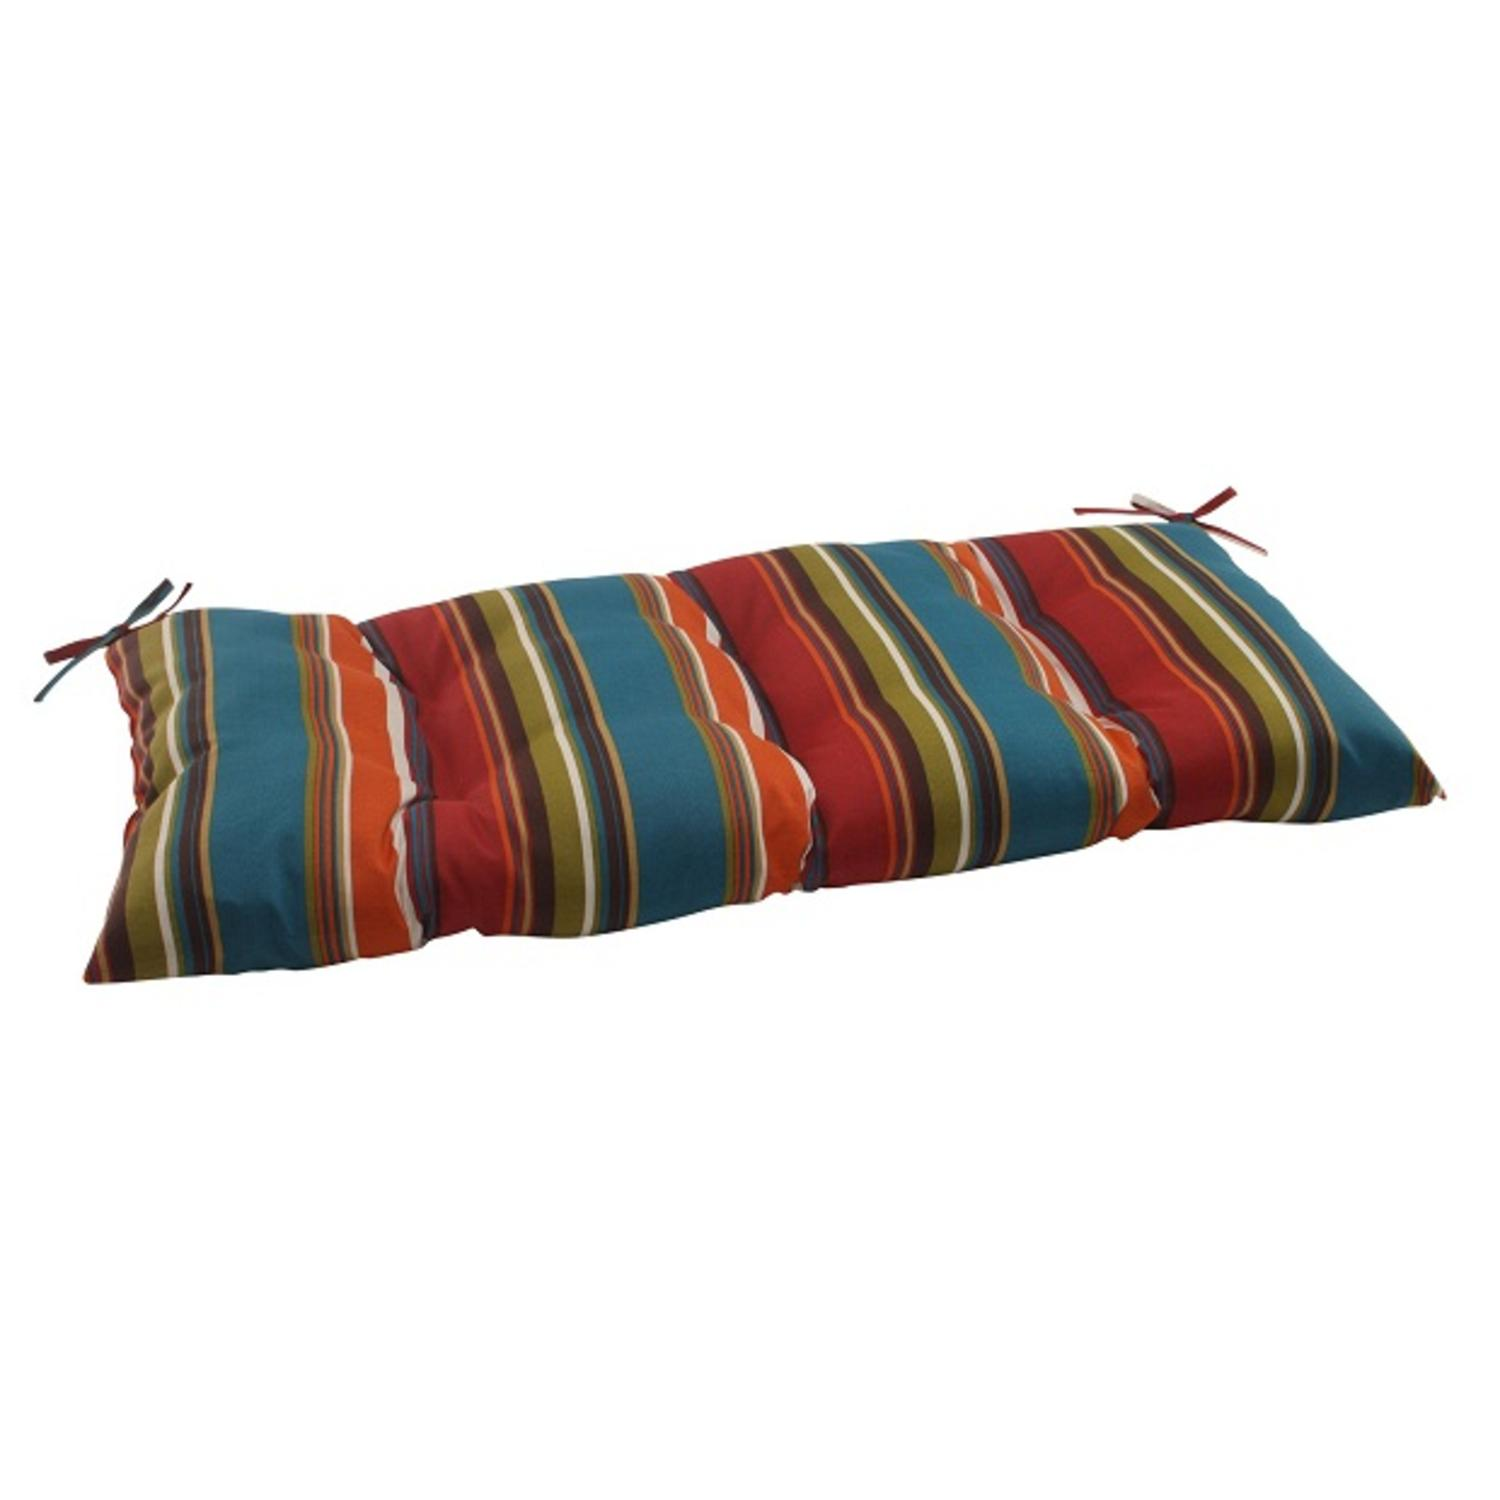 44 Quot Moroccan Striped Outdoor Patio Tufted Loveseat Cushion